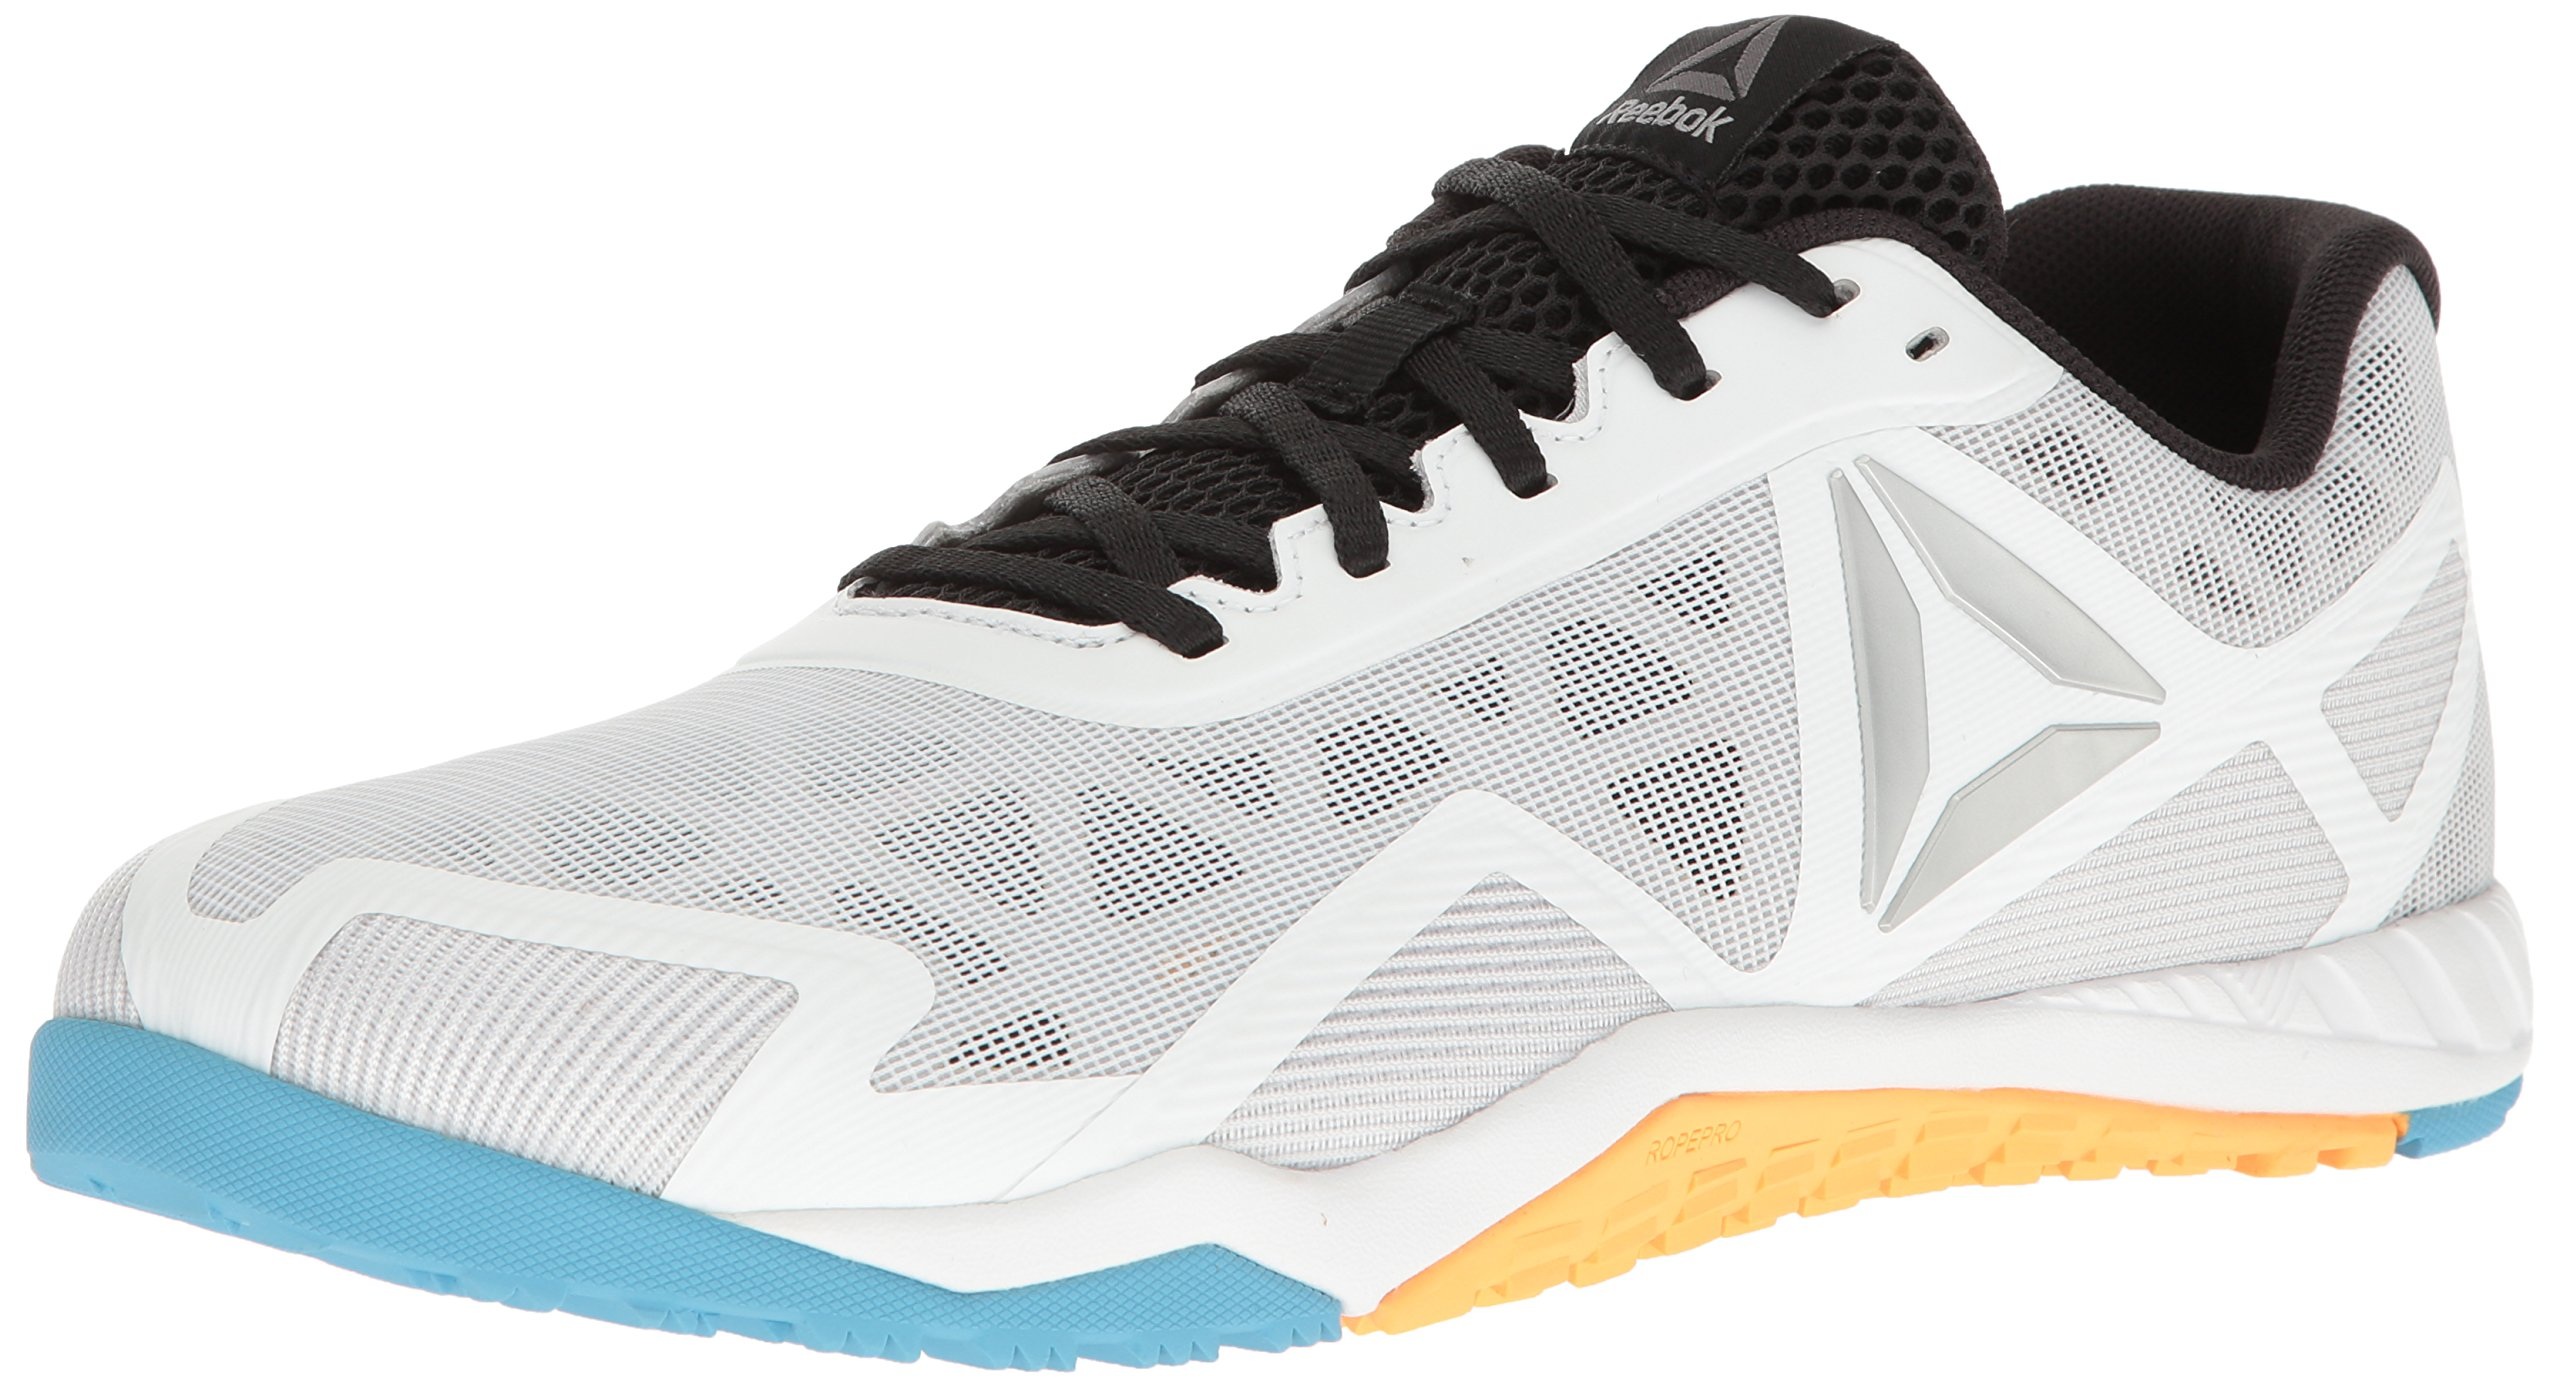 Reebok Men's ROS Workout TR 2.0 Cross-Trainer Shoe, White/Black/Blue Beam/Fir, 10.5 M US by Reebok